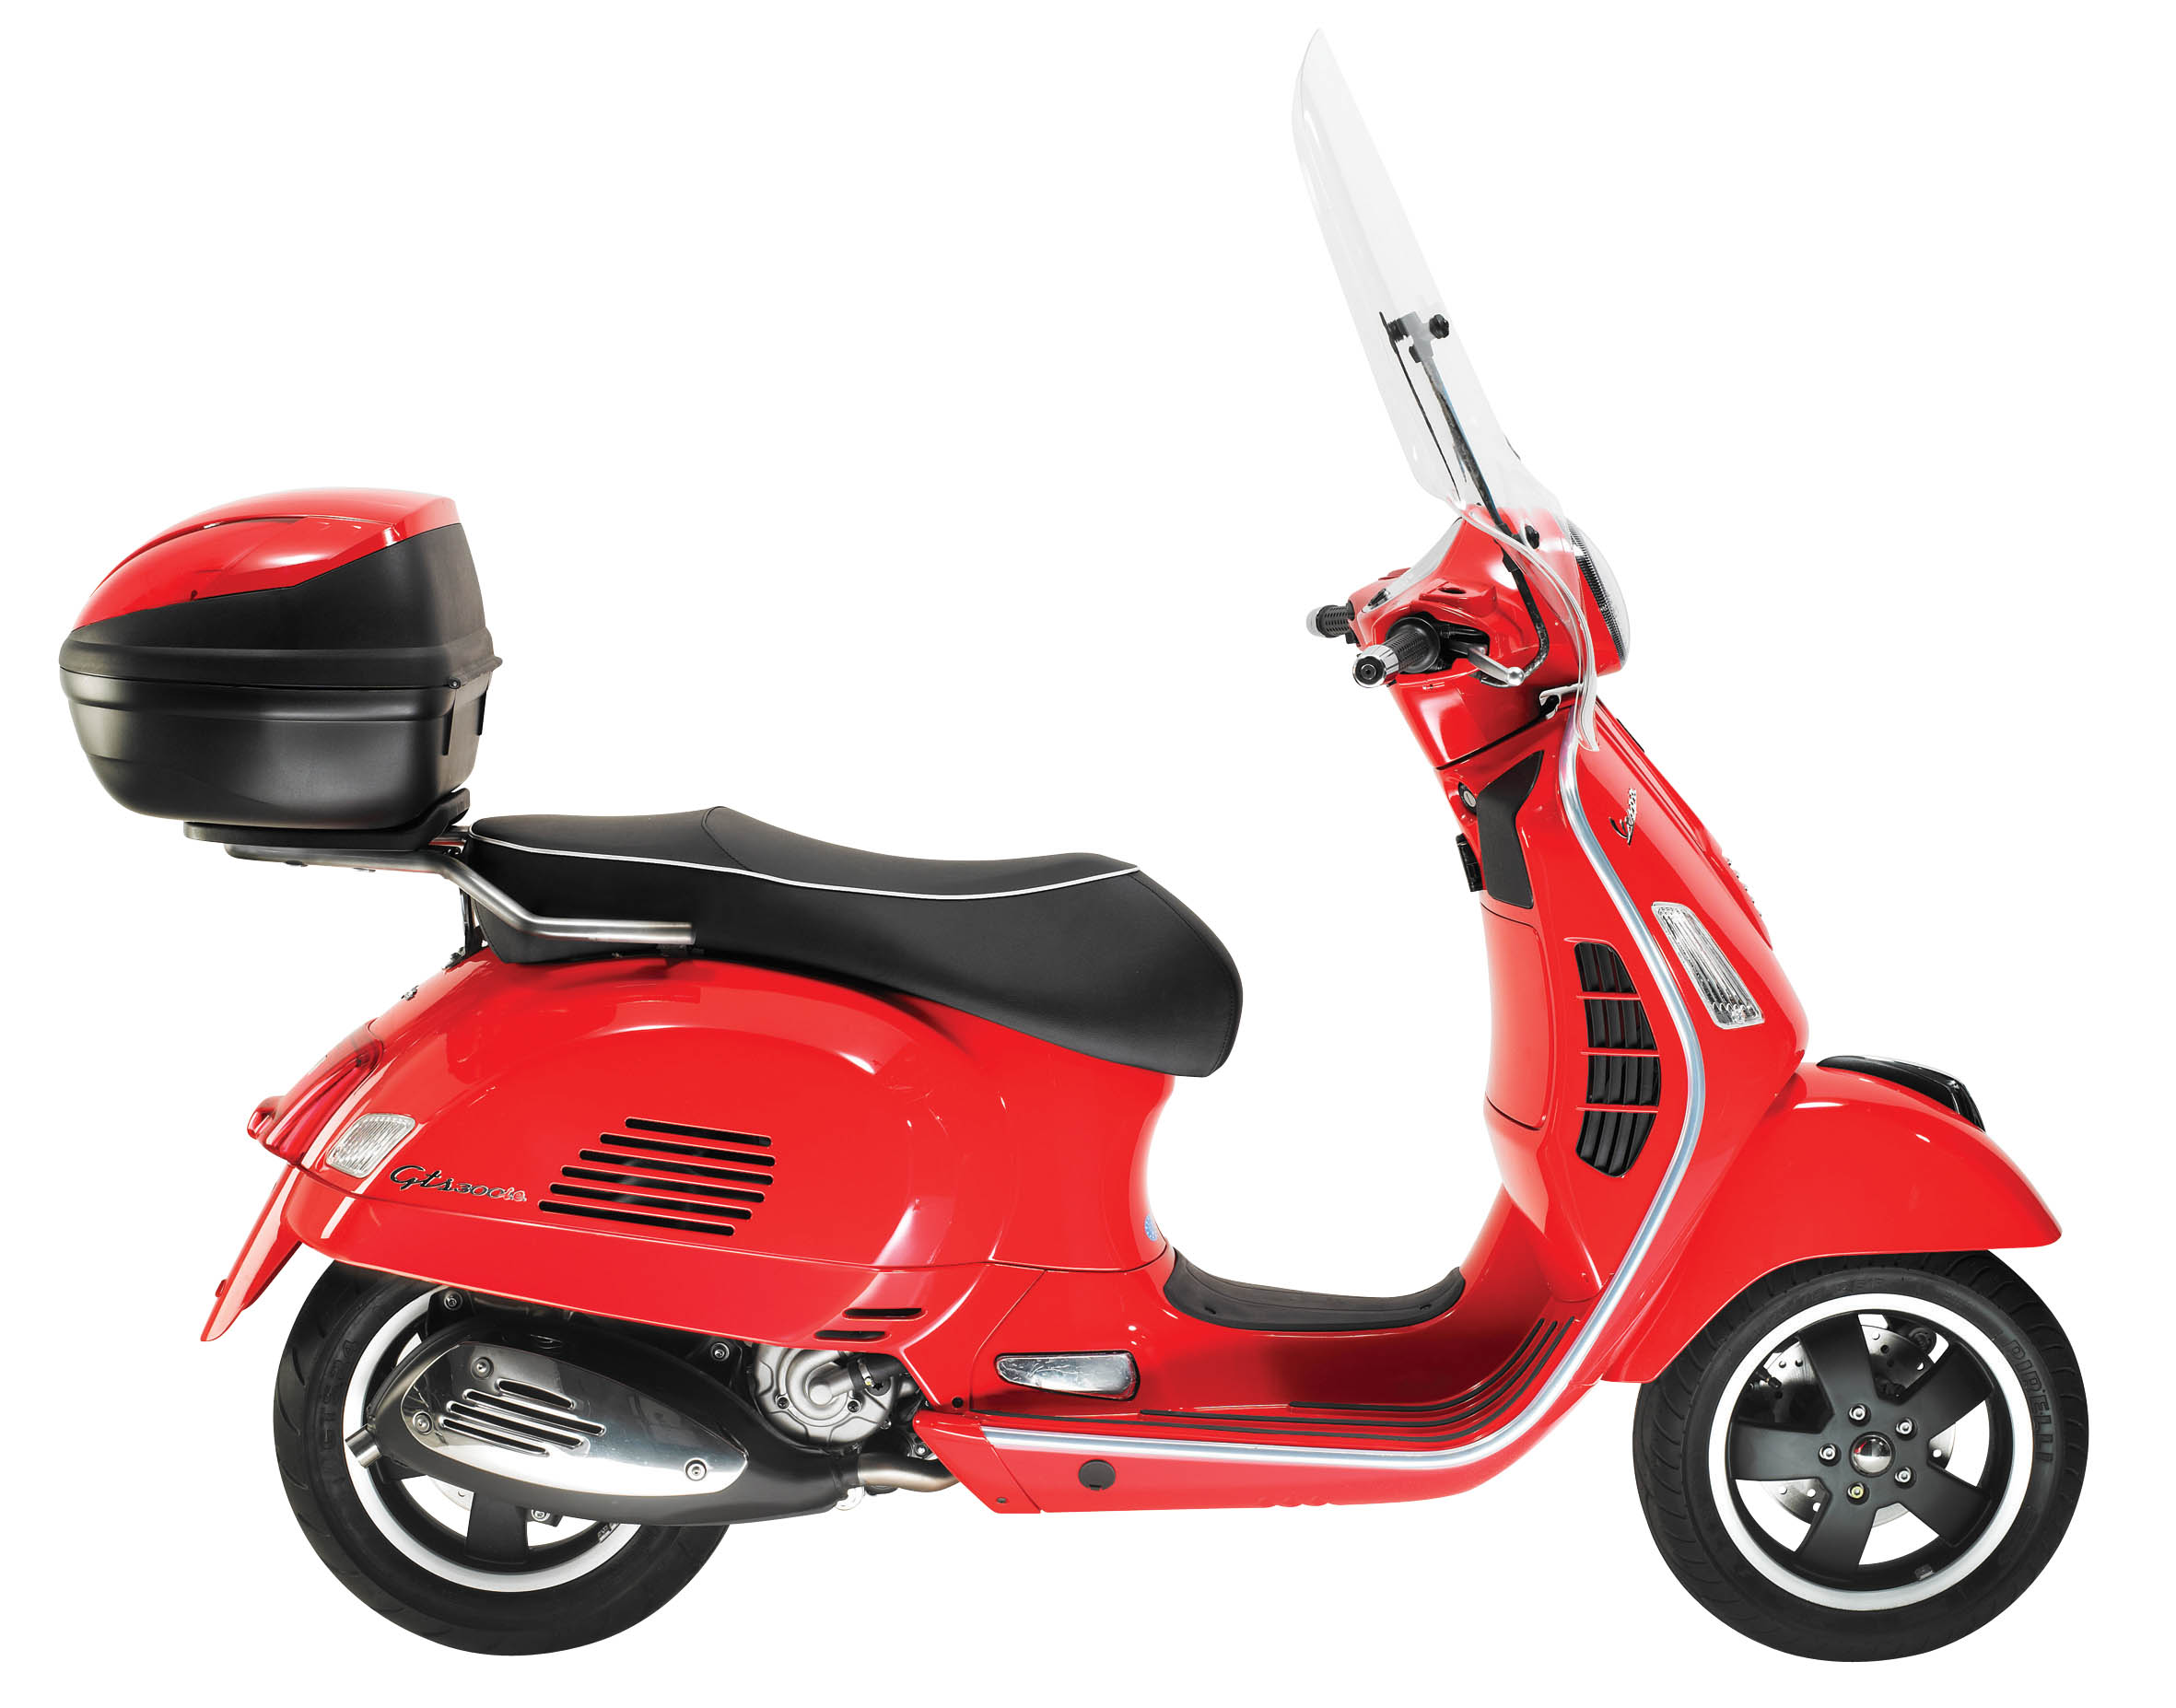 vespa gts review and photos. Black Bedroom Furniture Sets. Home Design Ideas